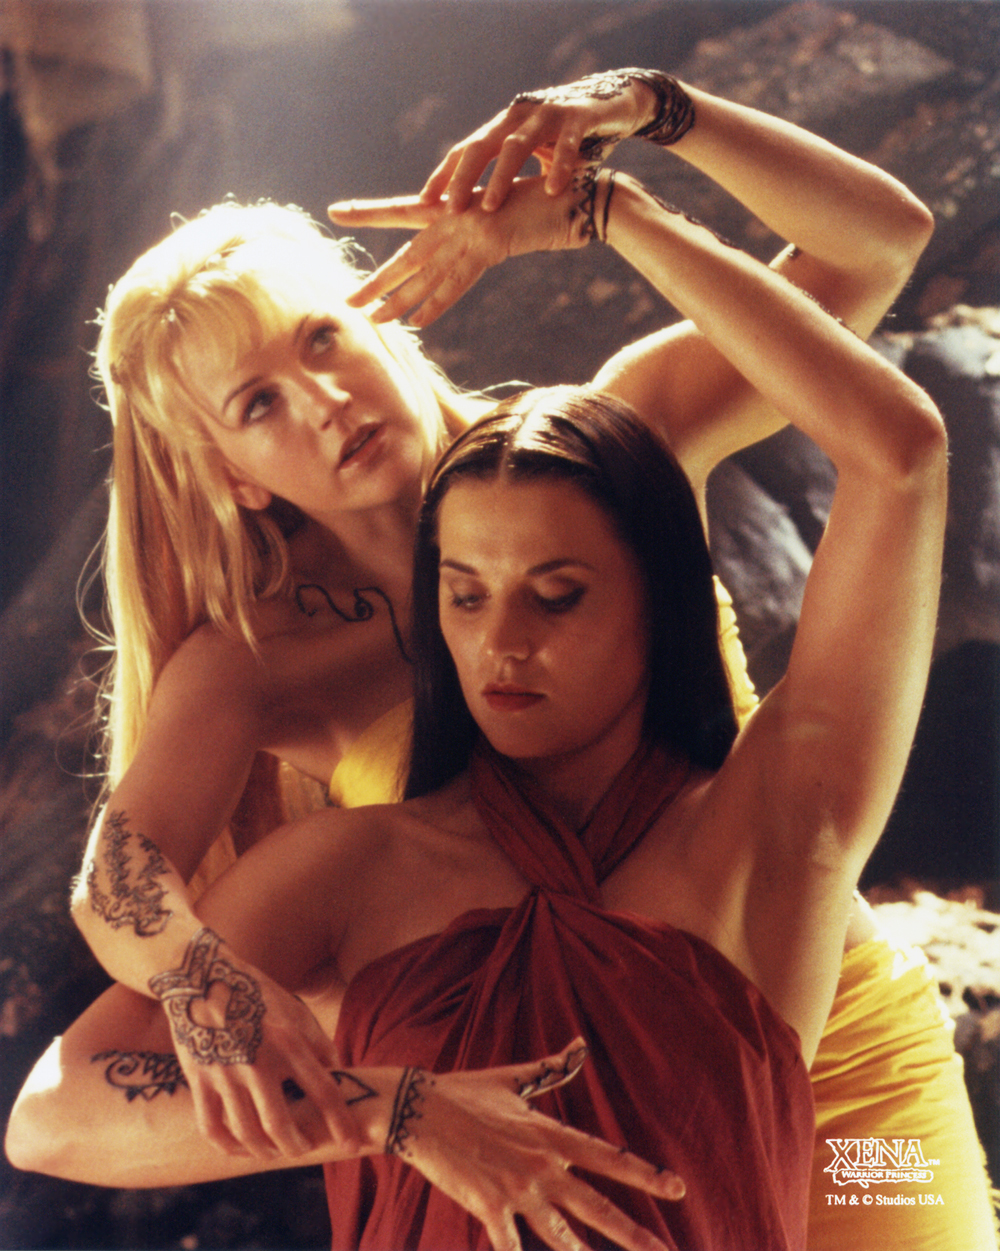 Xena and herculesxxx naked images